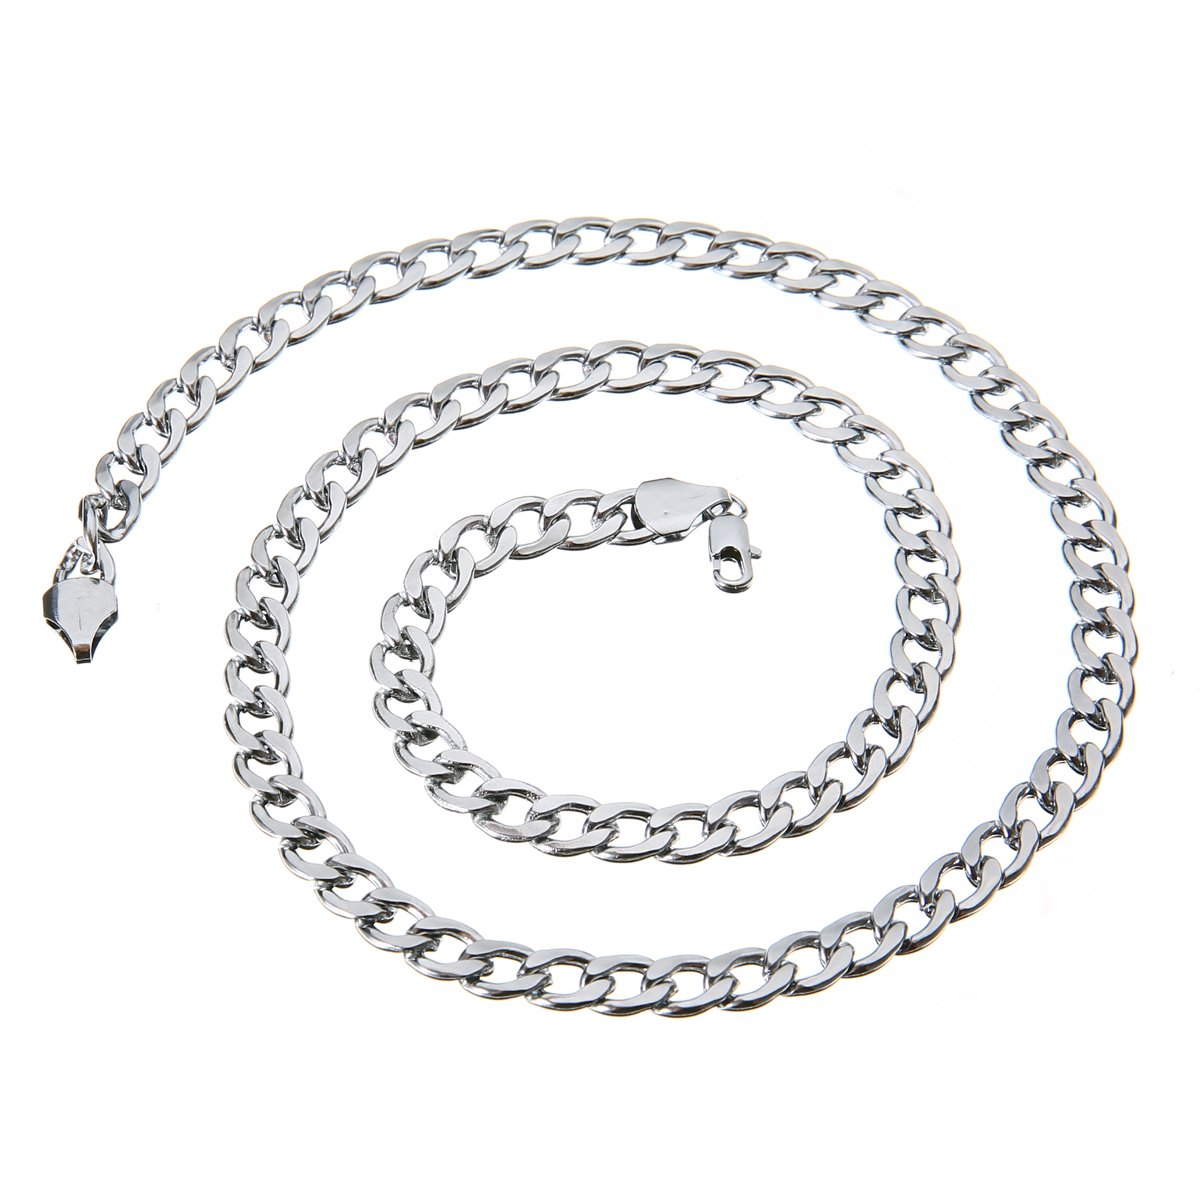 24 7mm Collier Chaîne Gourmette Maille Figaro Mayitr